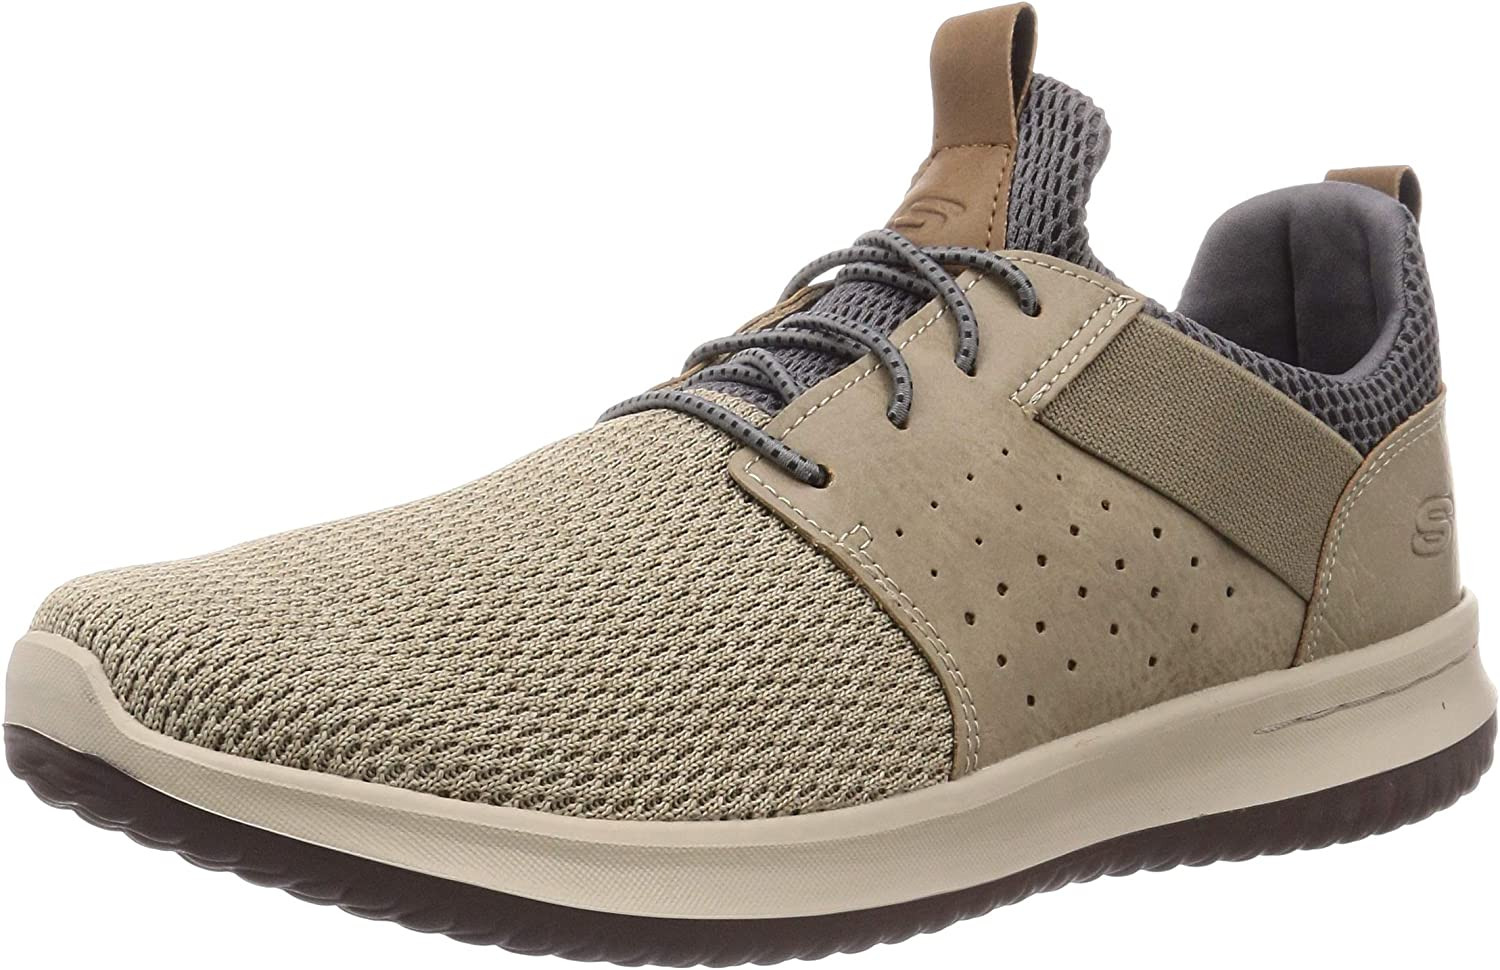 Skechers Classic Fit Delson Camden, Men's Sneakers, Taupe QXgwh